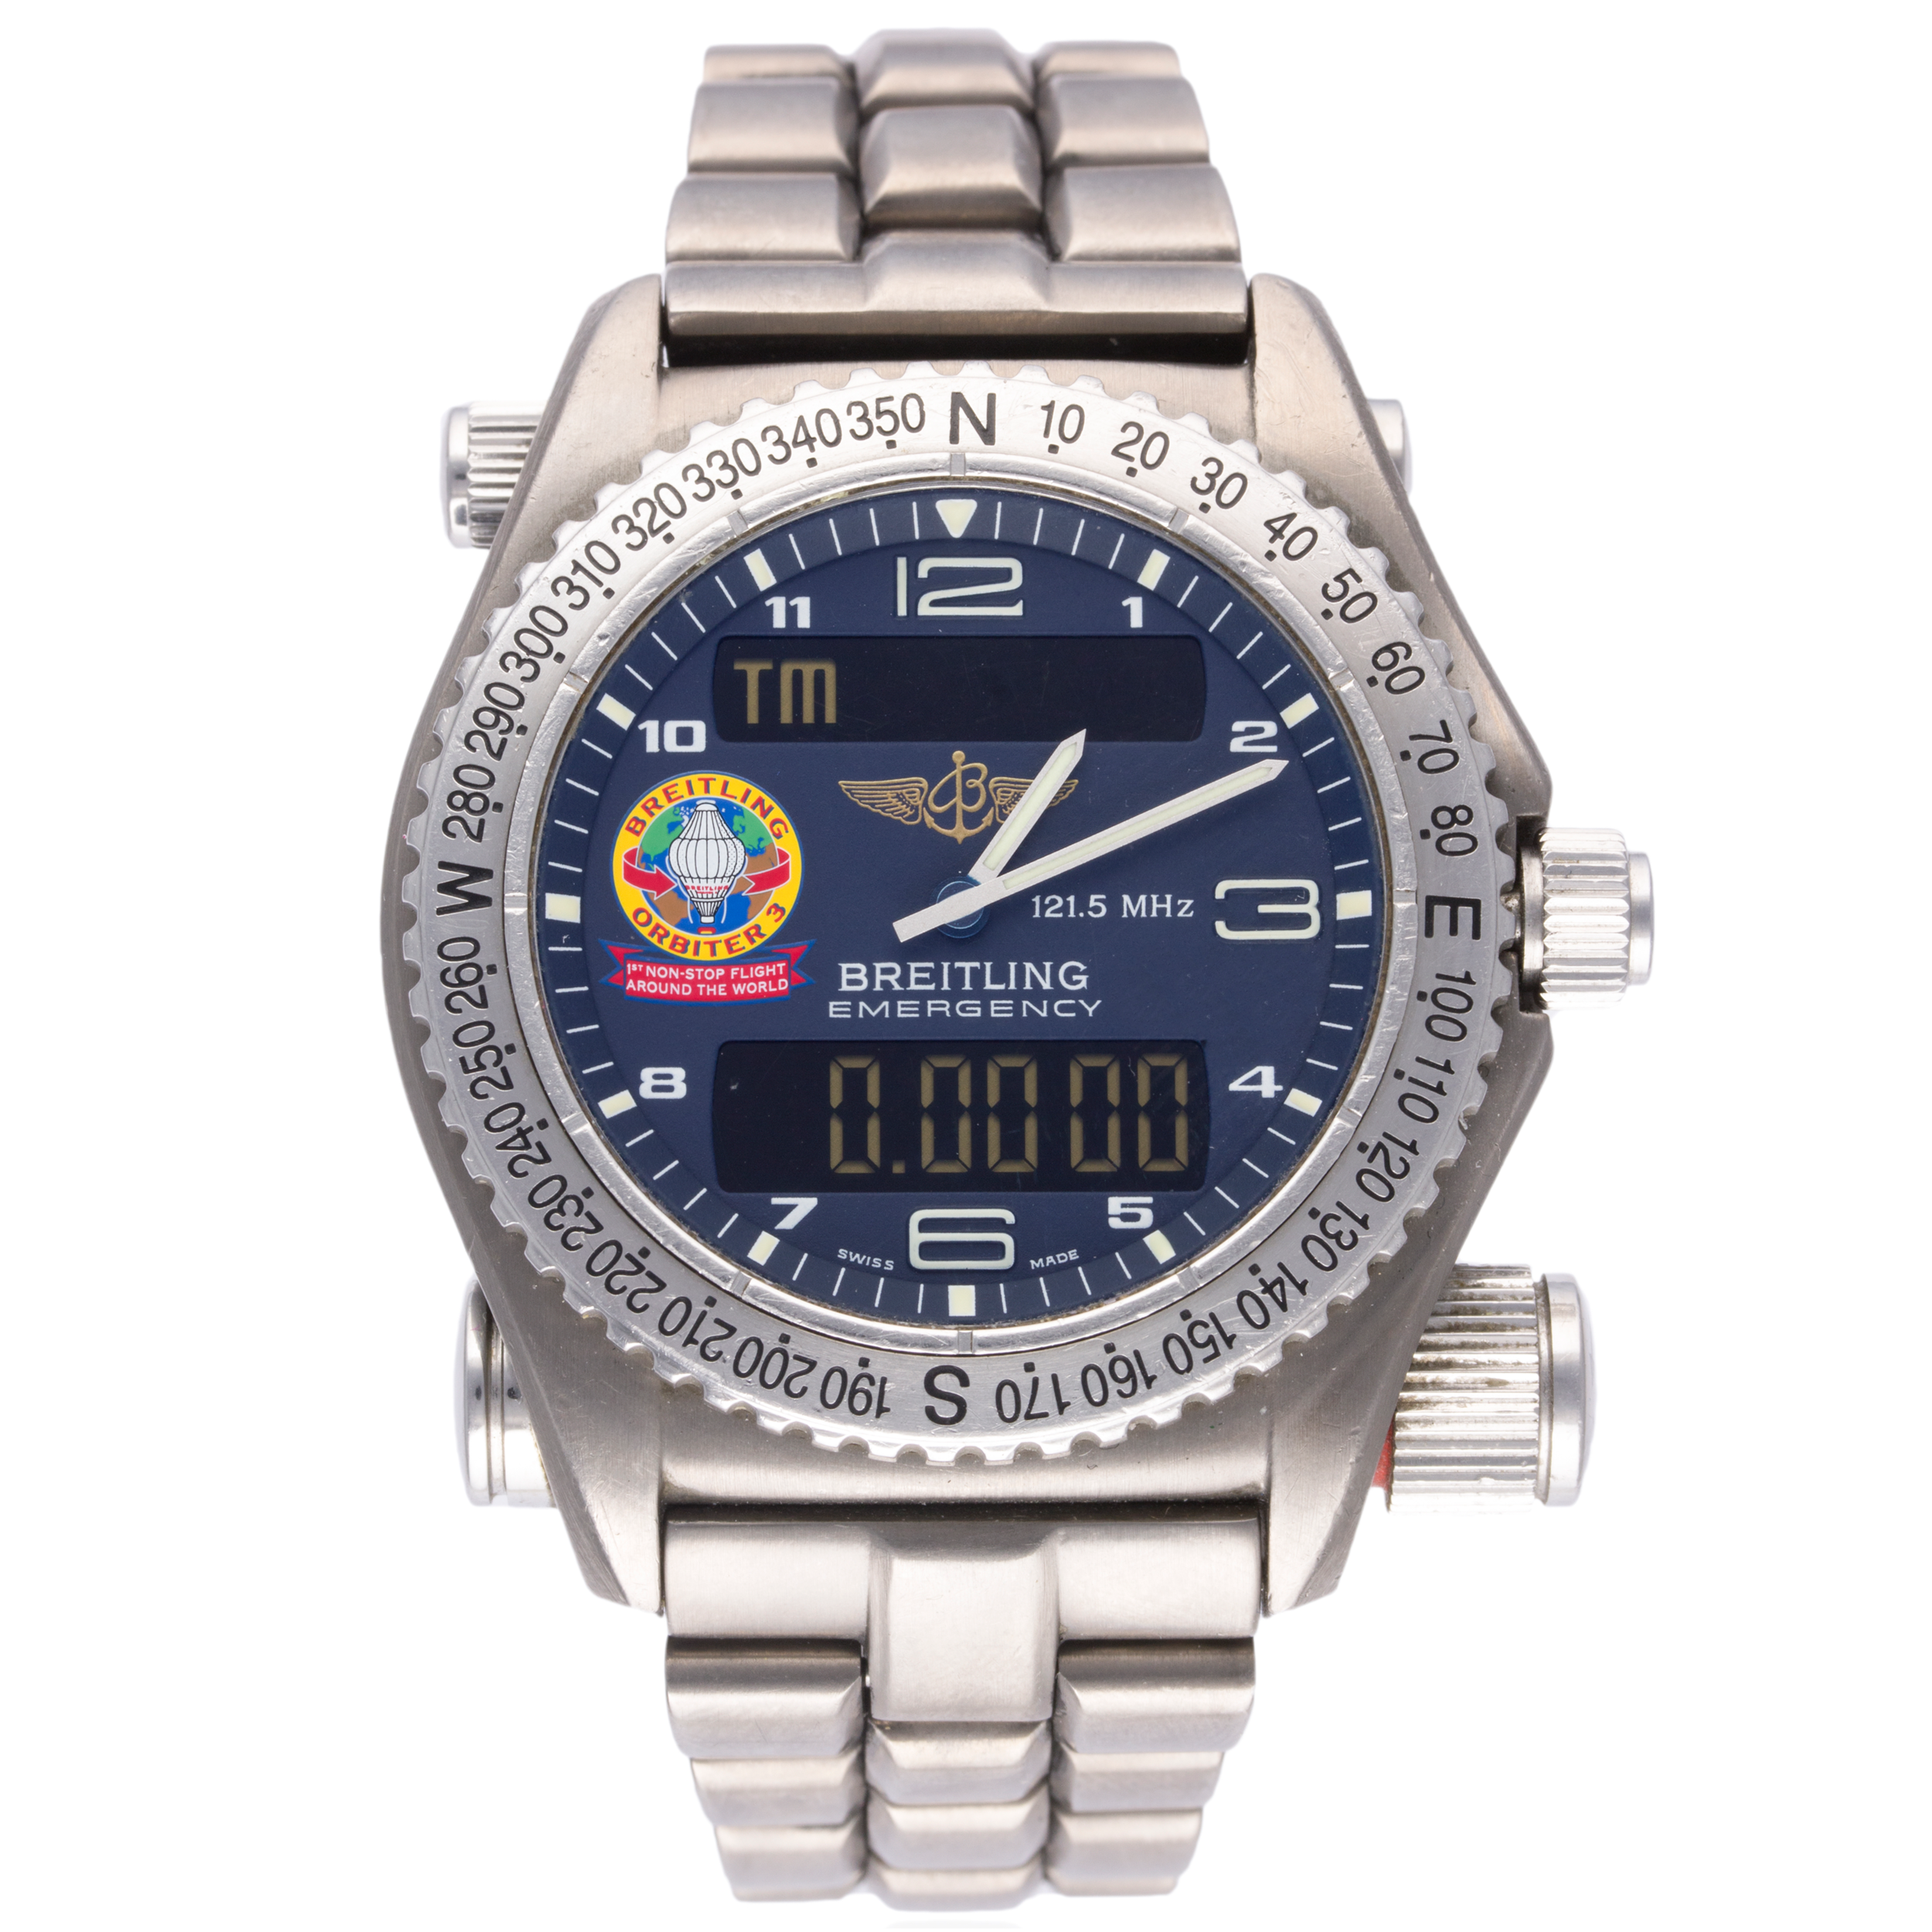 Lot 19 - Breitling Emergency Orbiter 3 Limited Edition